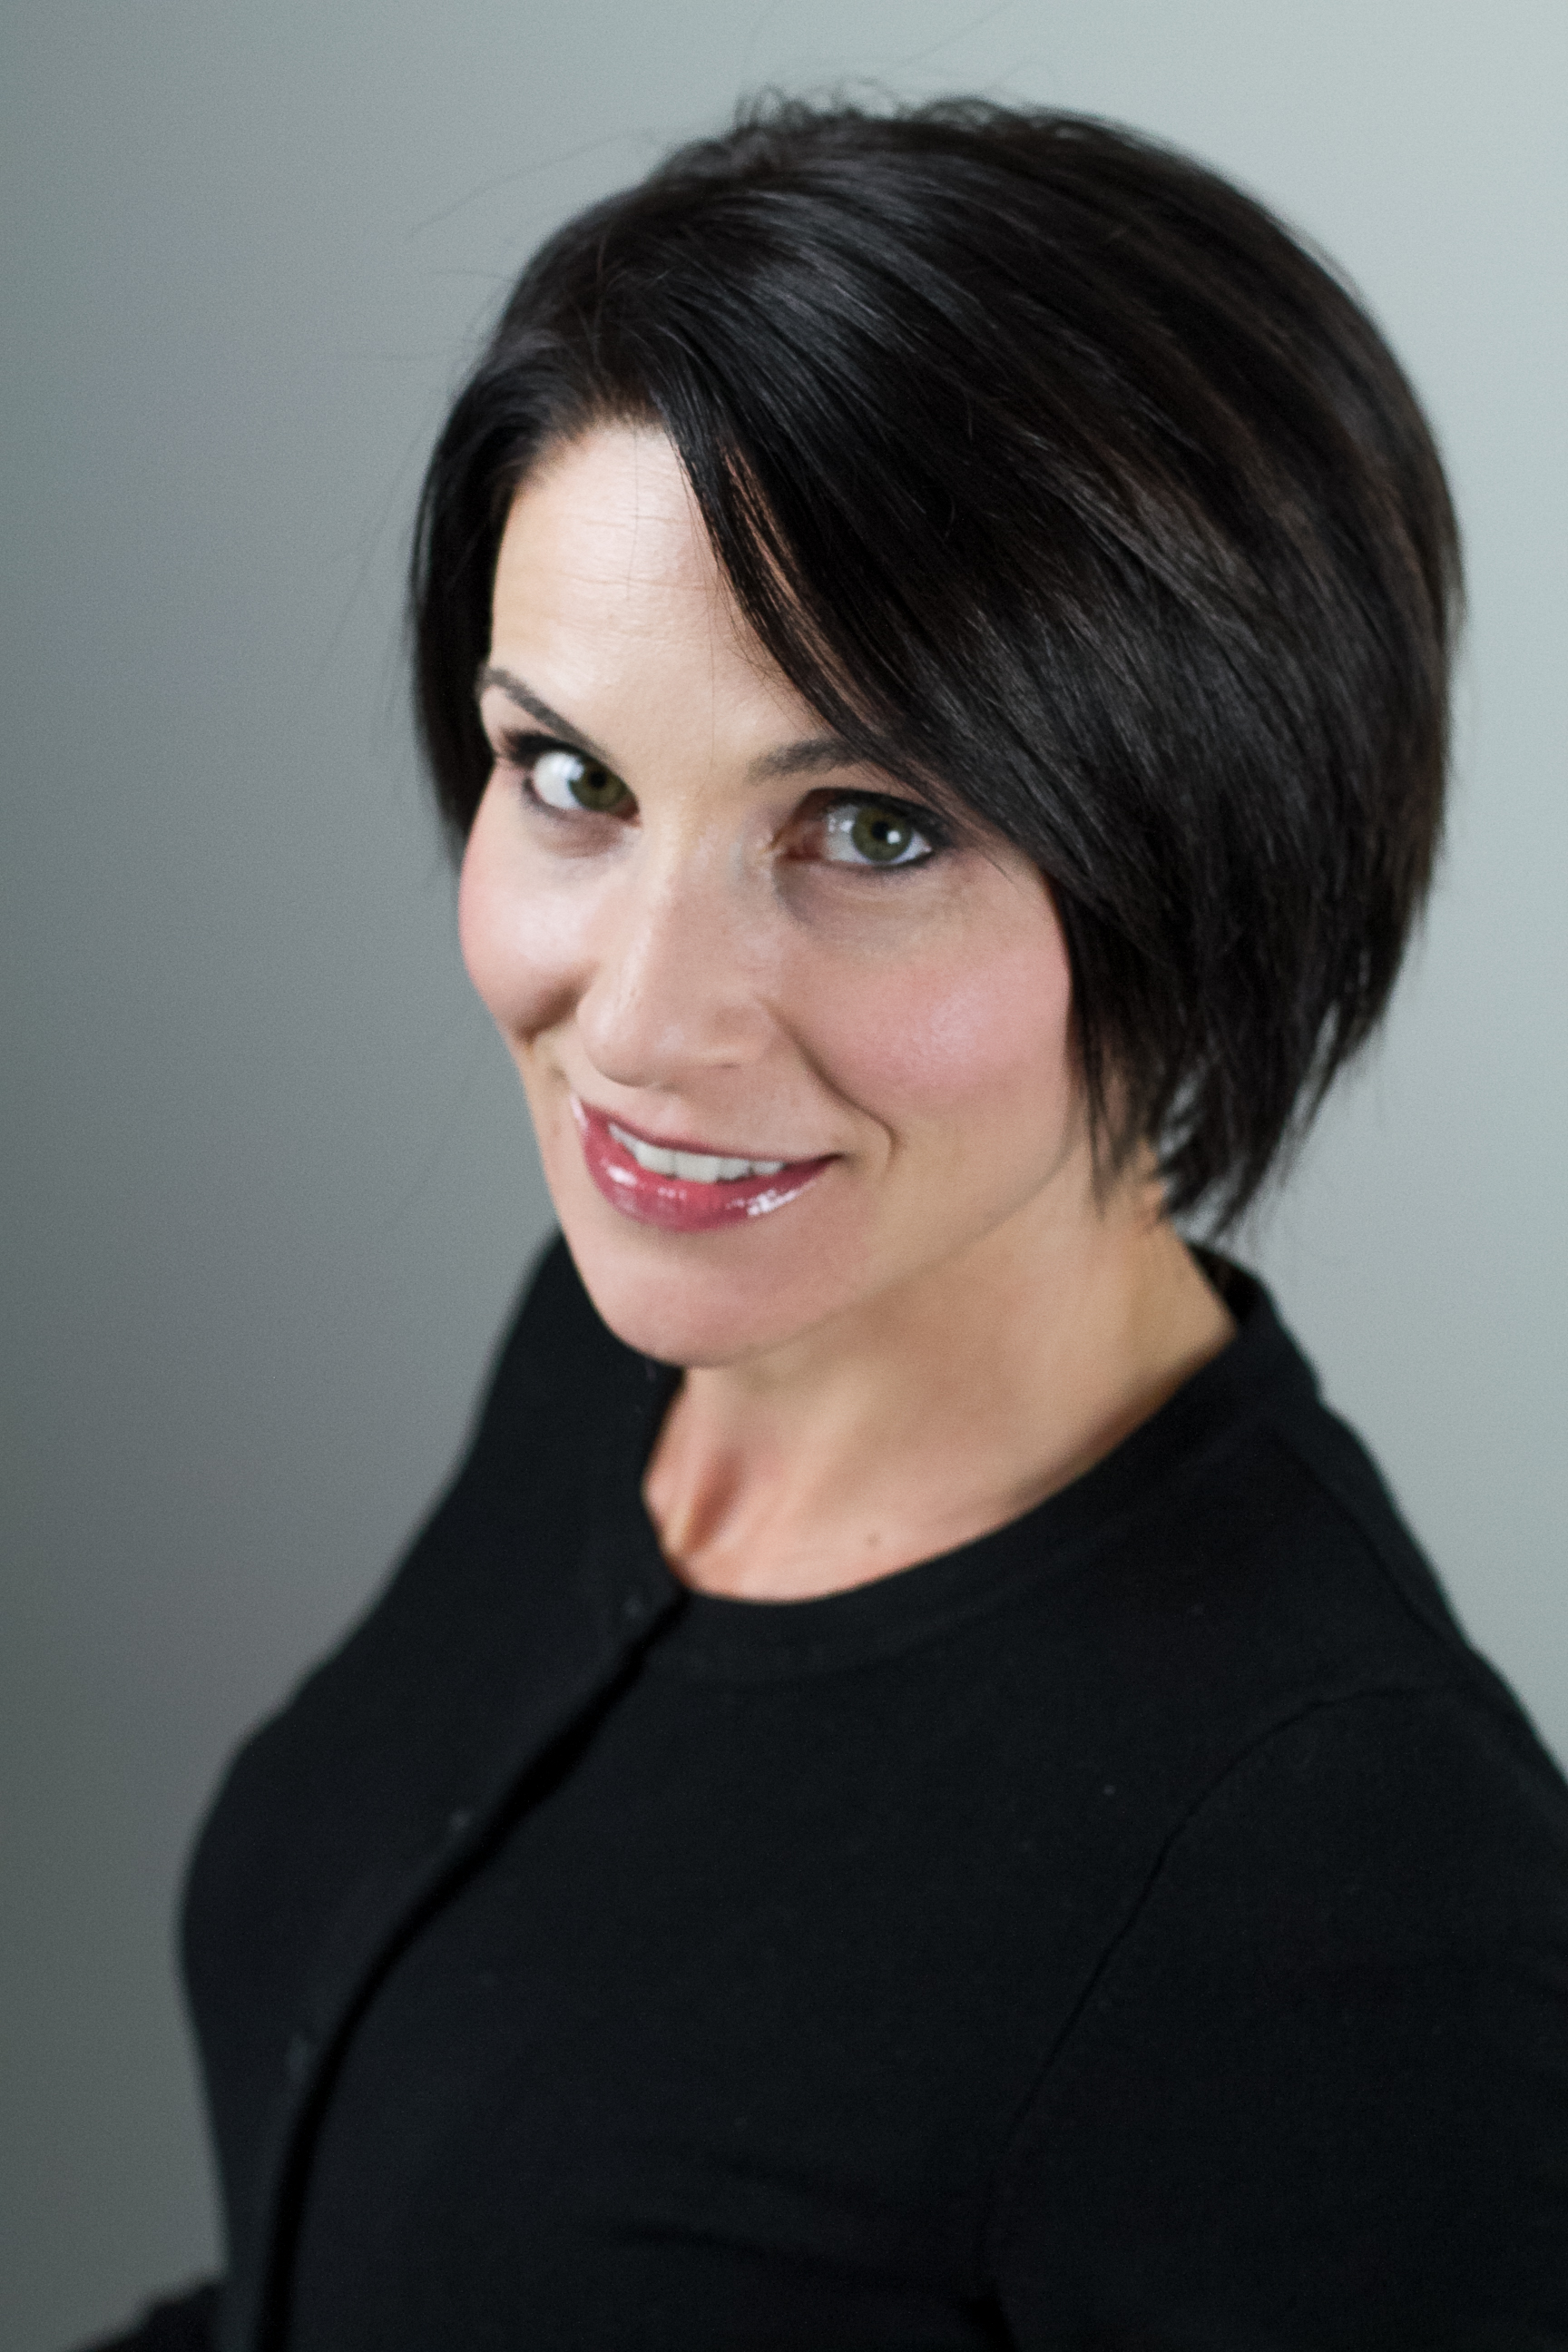 Lianne Perissinotti Le Rue : Insurance Relations Manager